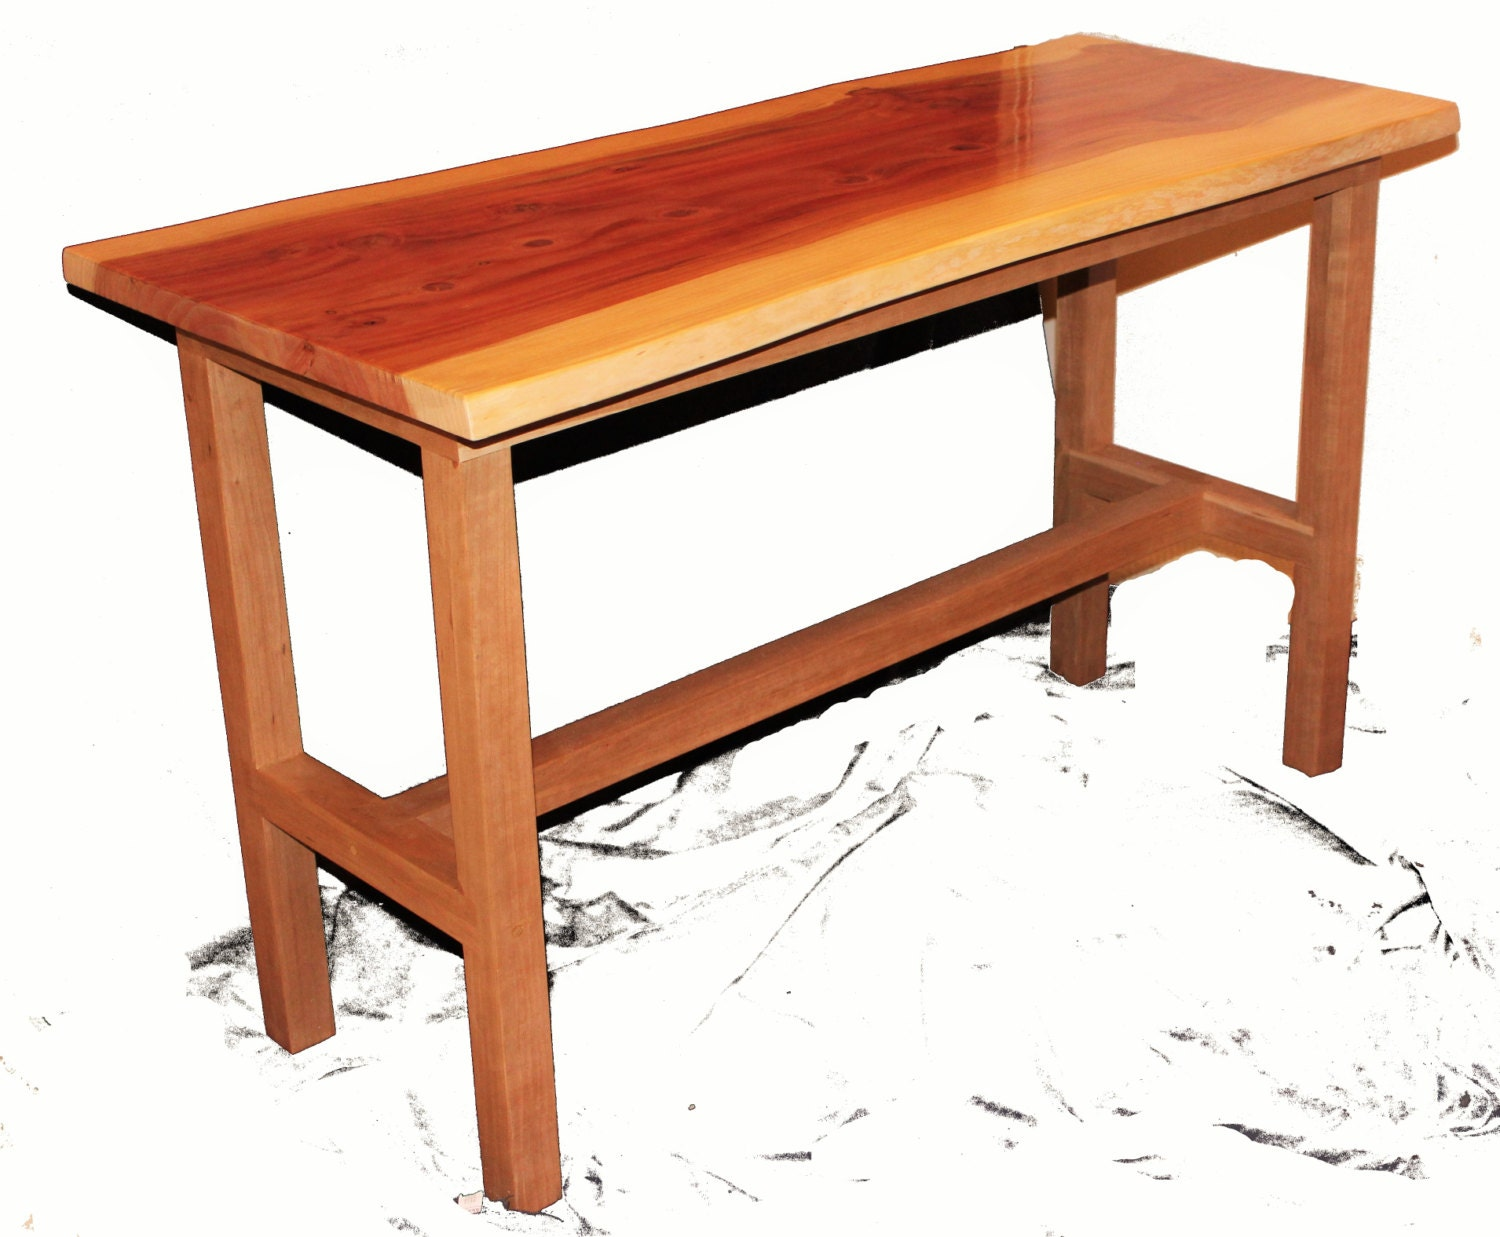 redwood and cherry kitchen table